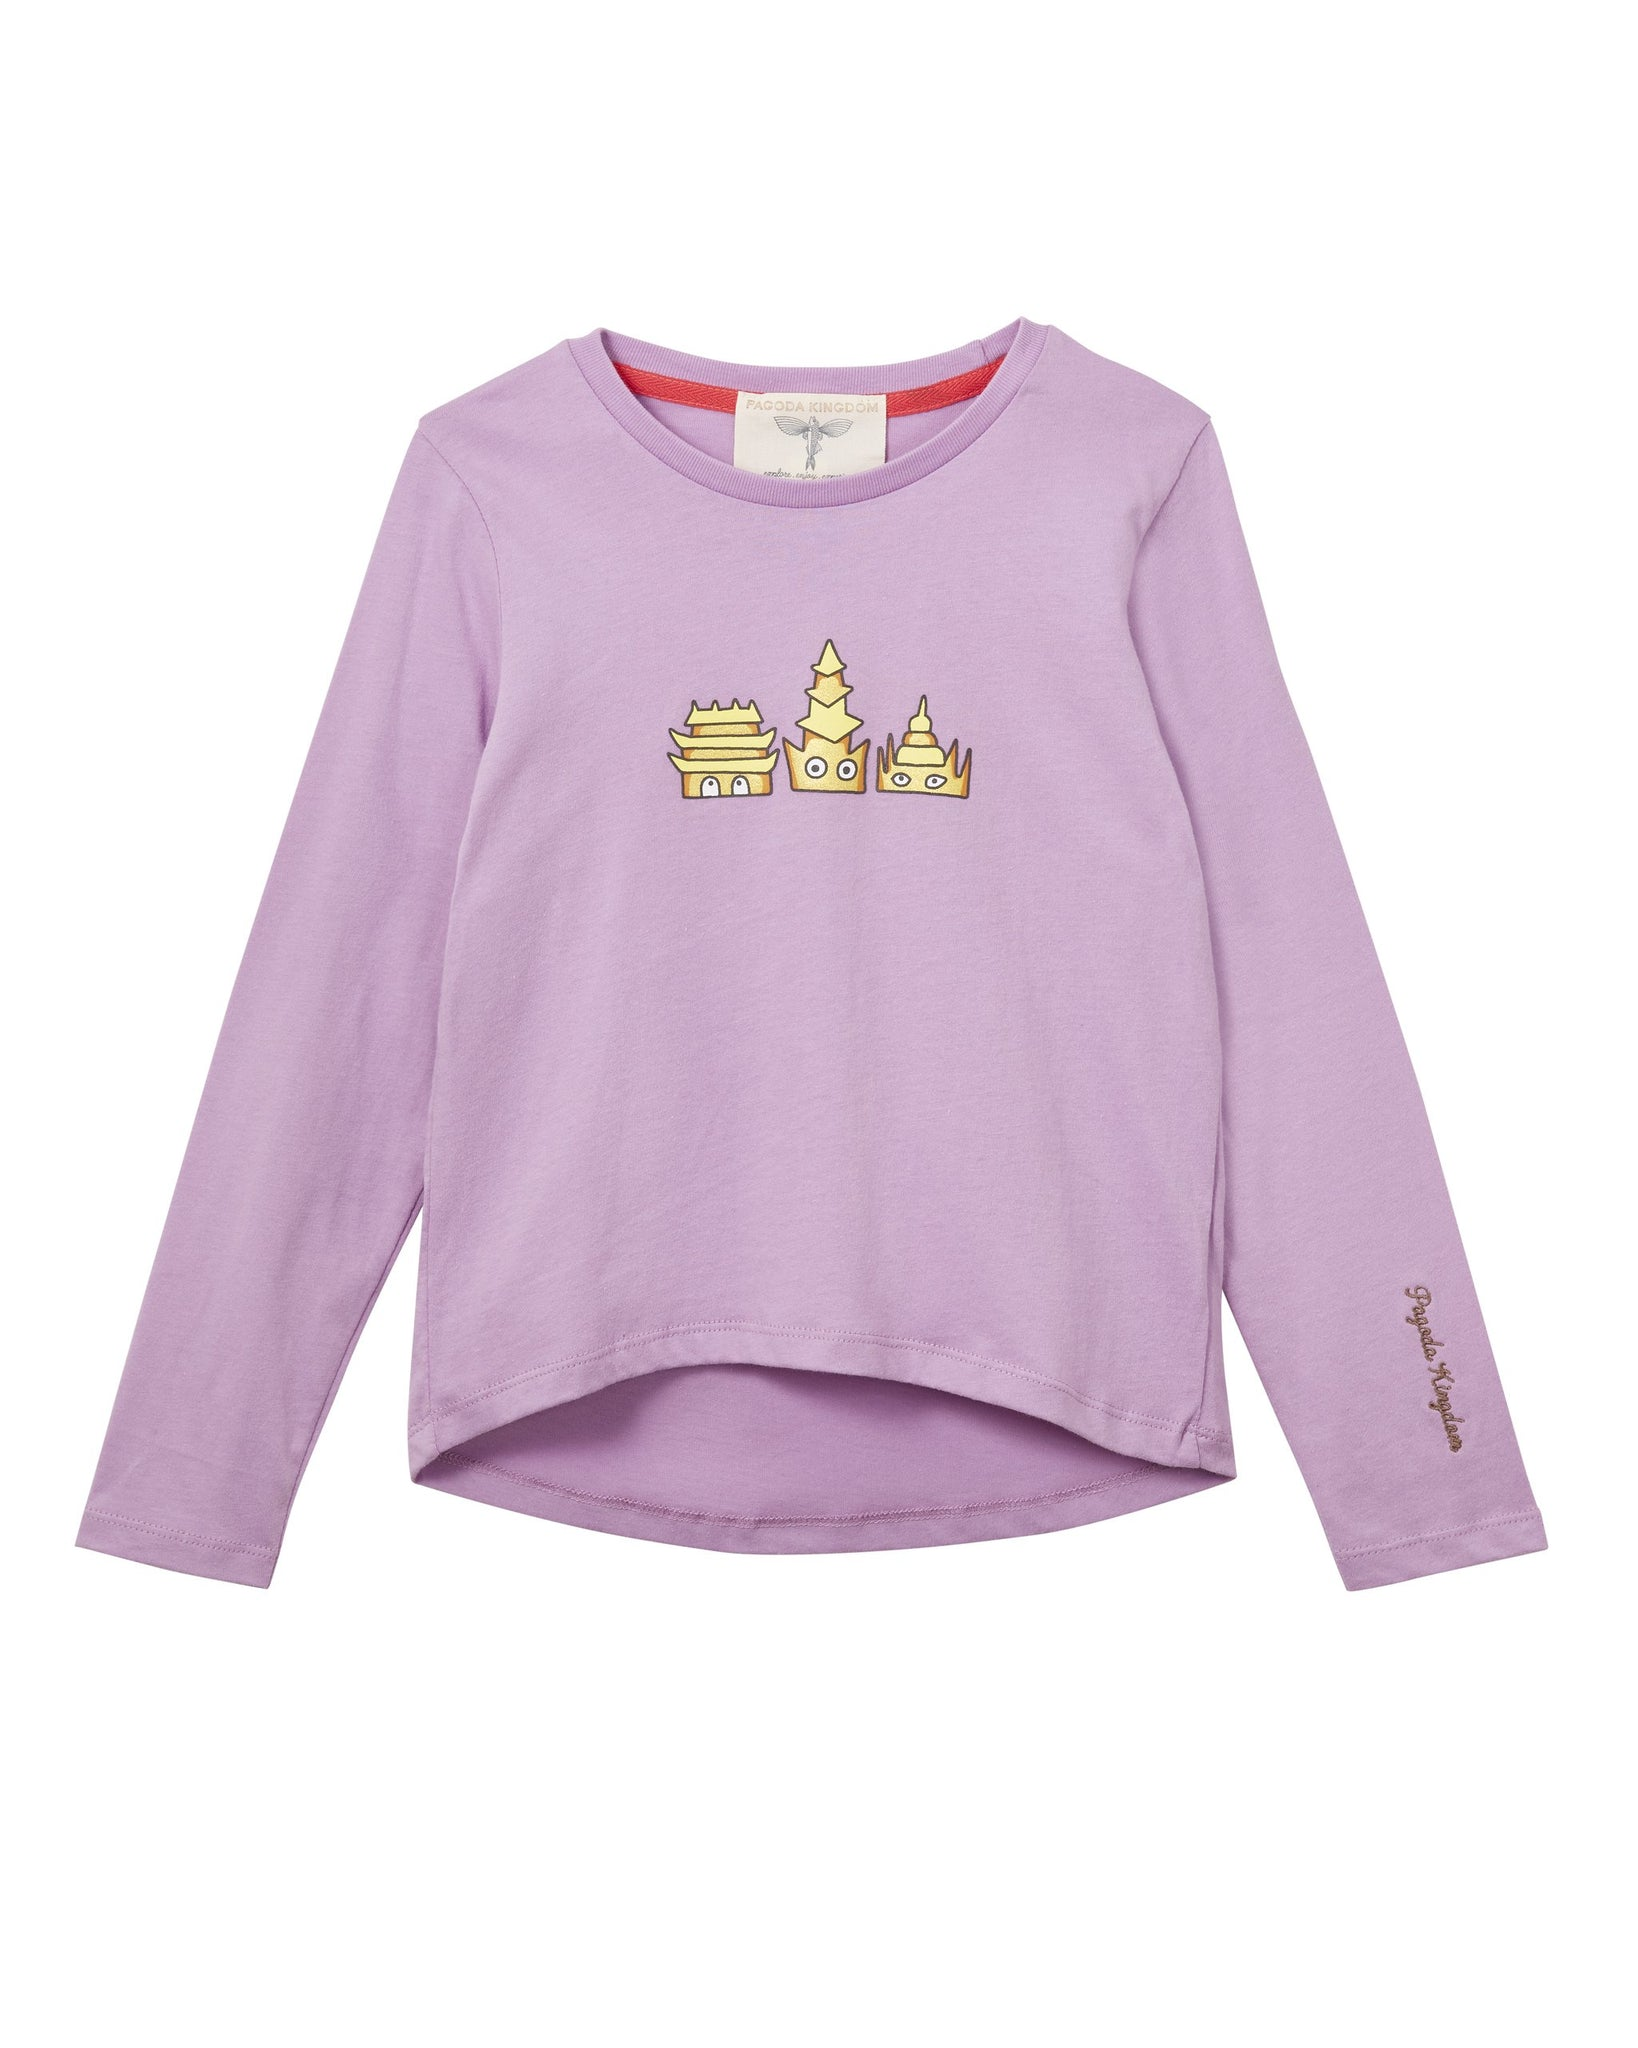 MANO PLUS | Pagoda Kingdom | Golden Pagodas Printed T-Shirt Magenta